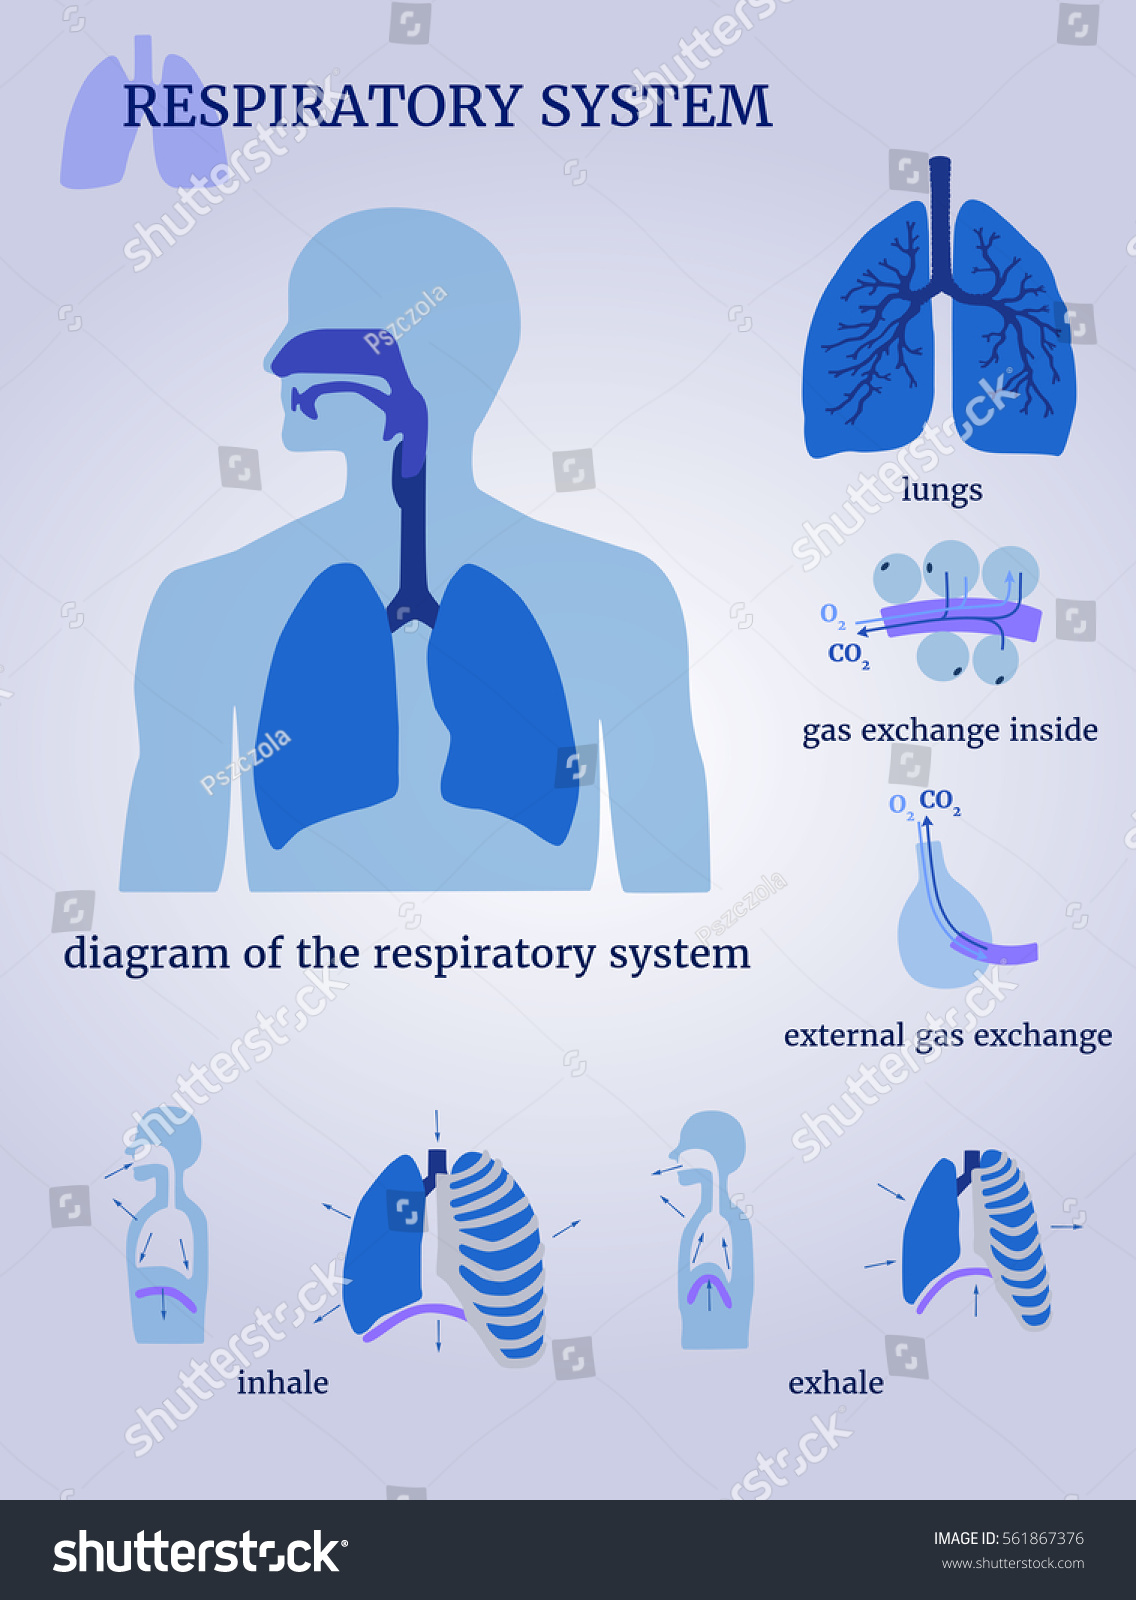 hight resolution of respiratory system diagram of the respiratory system with lungs inside gas exchange external